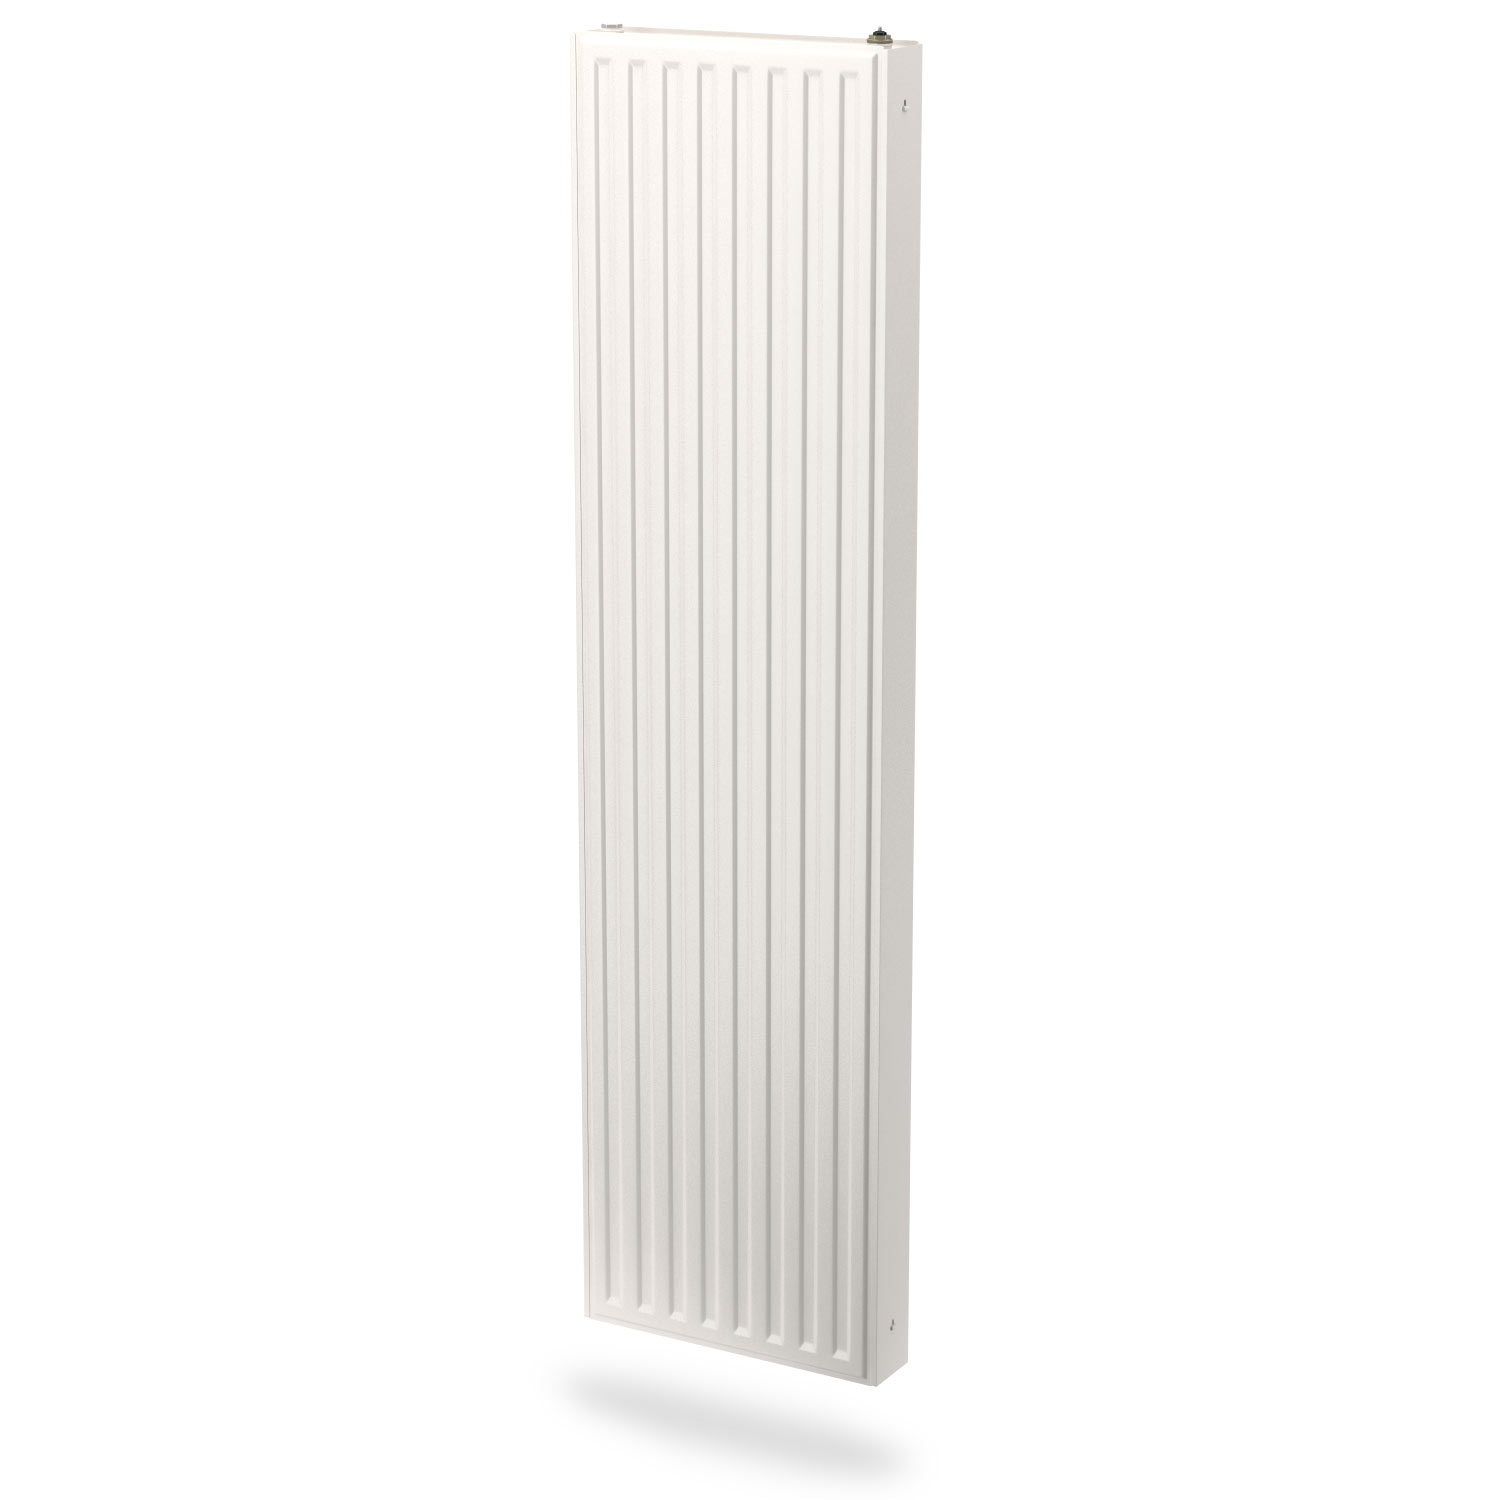 radiateur mural vertical simple radiateur design vertical nile x cm en blanc with radiateur. Black Bedroom Furniture Sets. Home Design Ideas